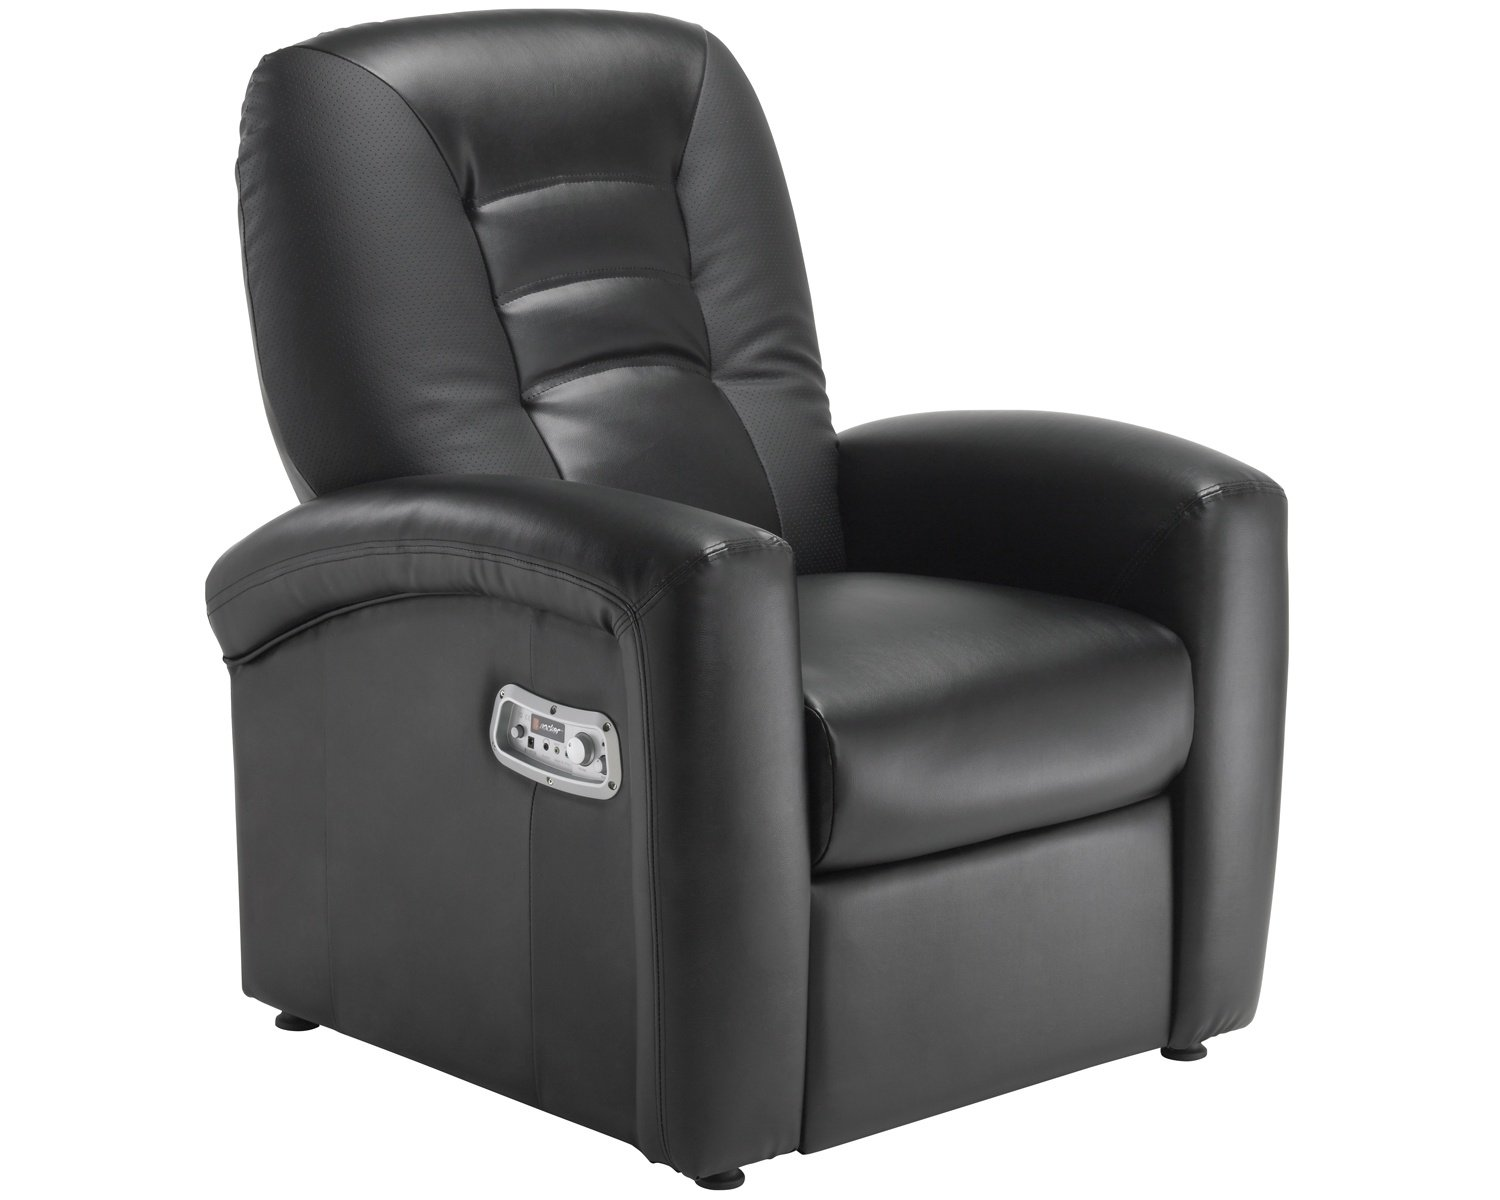 Cheap Game Chairs With Speakers Home Furniture Design